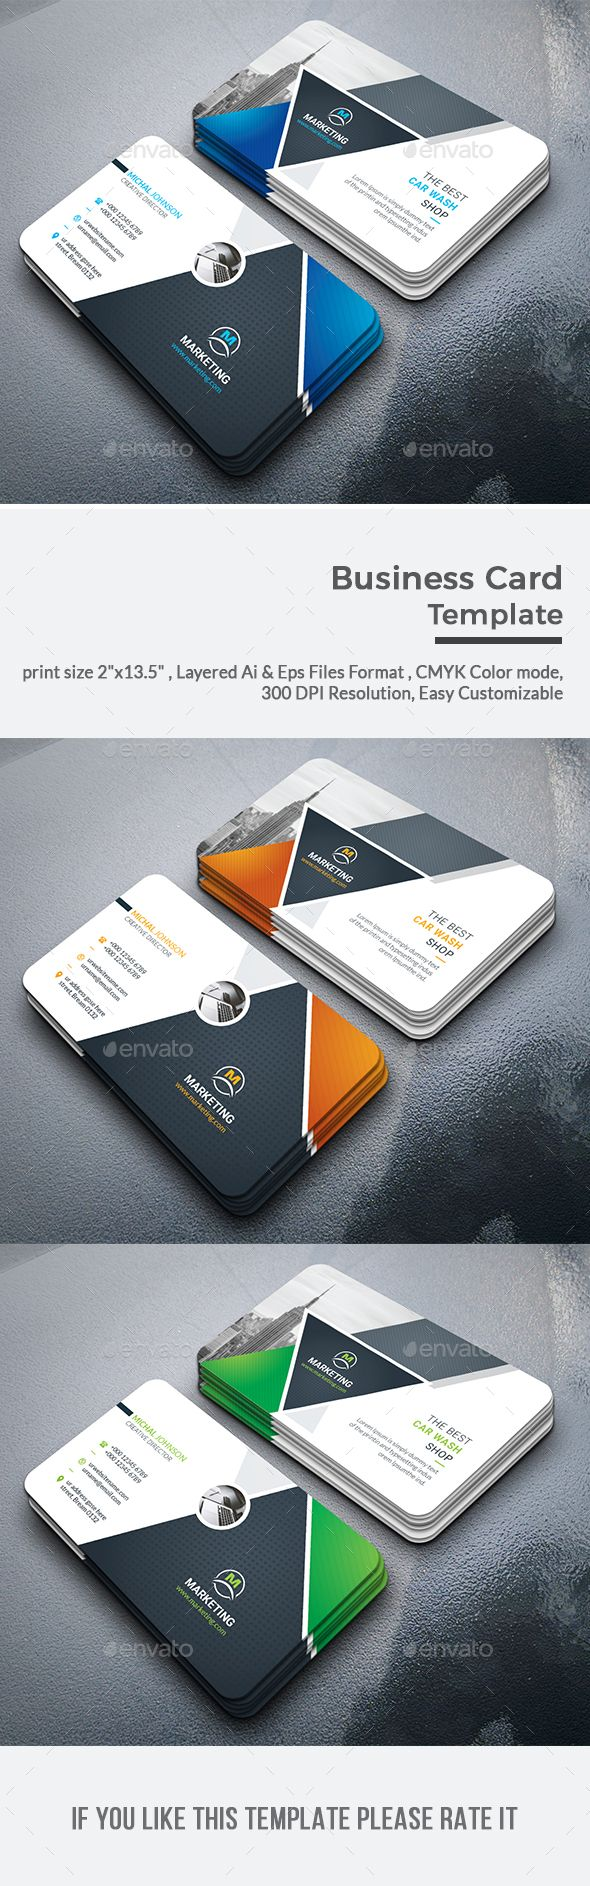 Business card print size bleed image collections card design and business card business card print size 235inch bleed setting business card business card print size 235inch reheart Choice Image